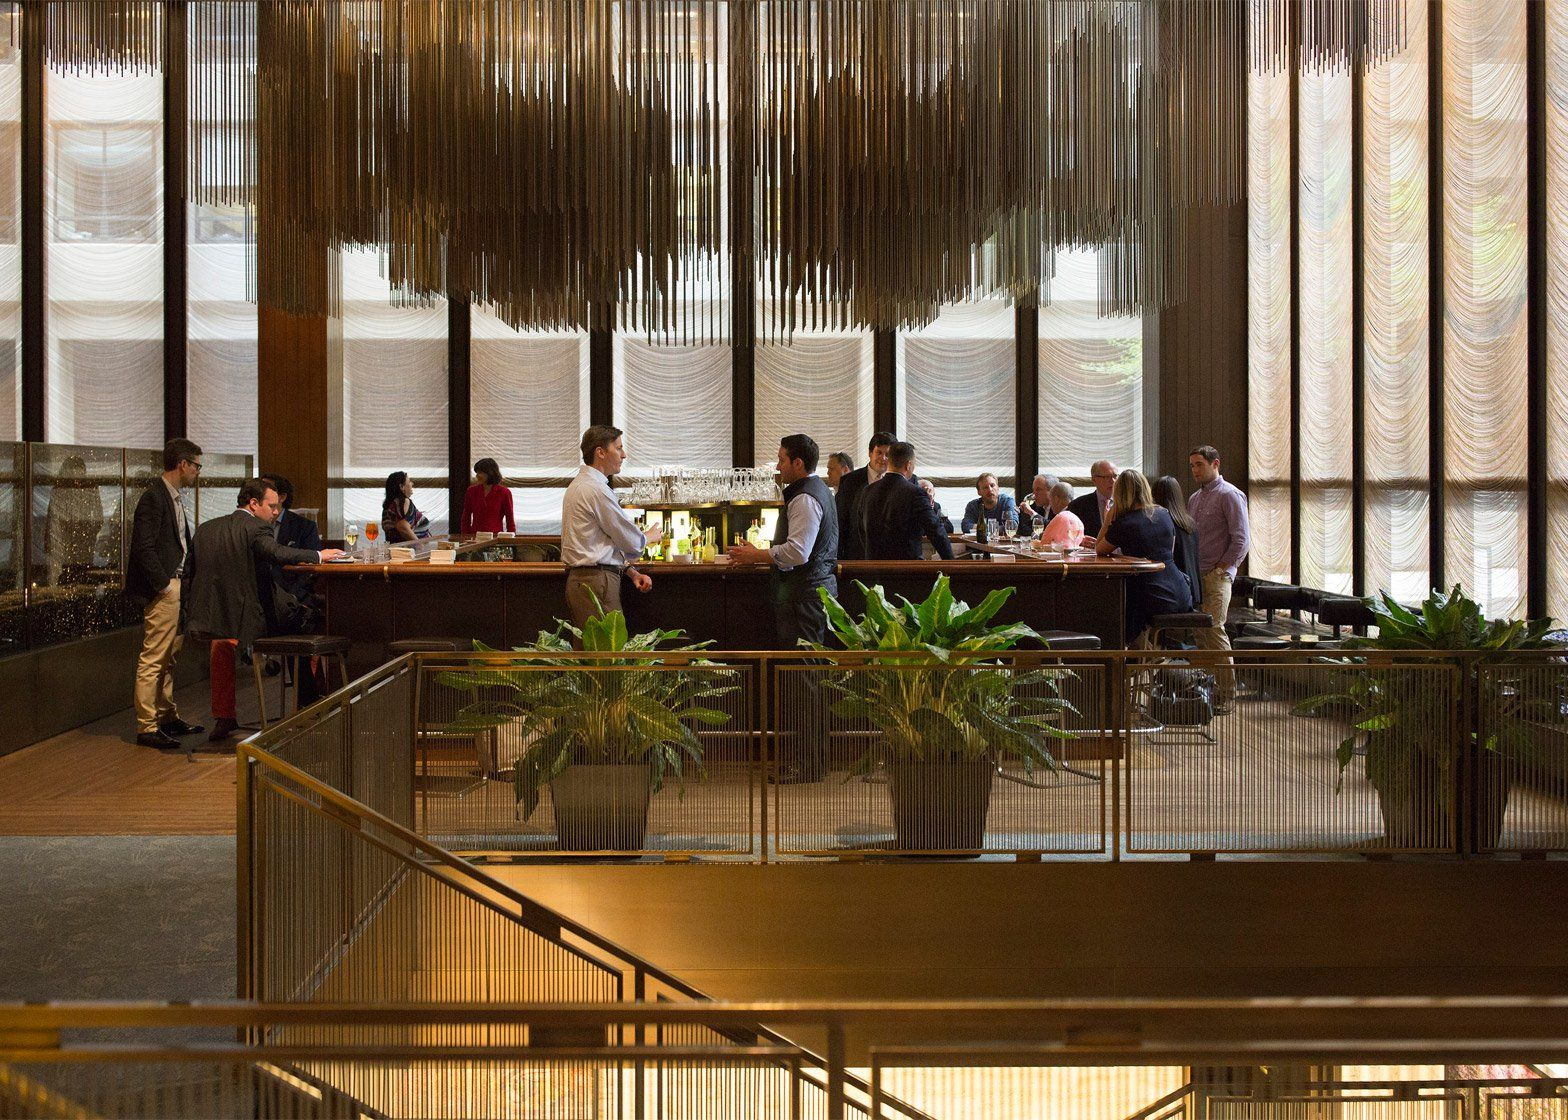 Four seasons restaurant by philip johnson and mies van der rohe furniture auction in new york city usa